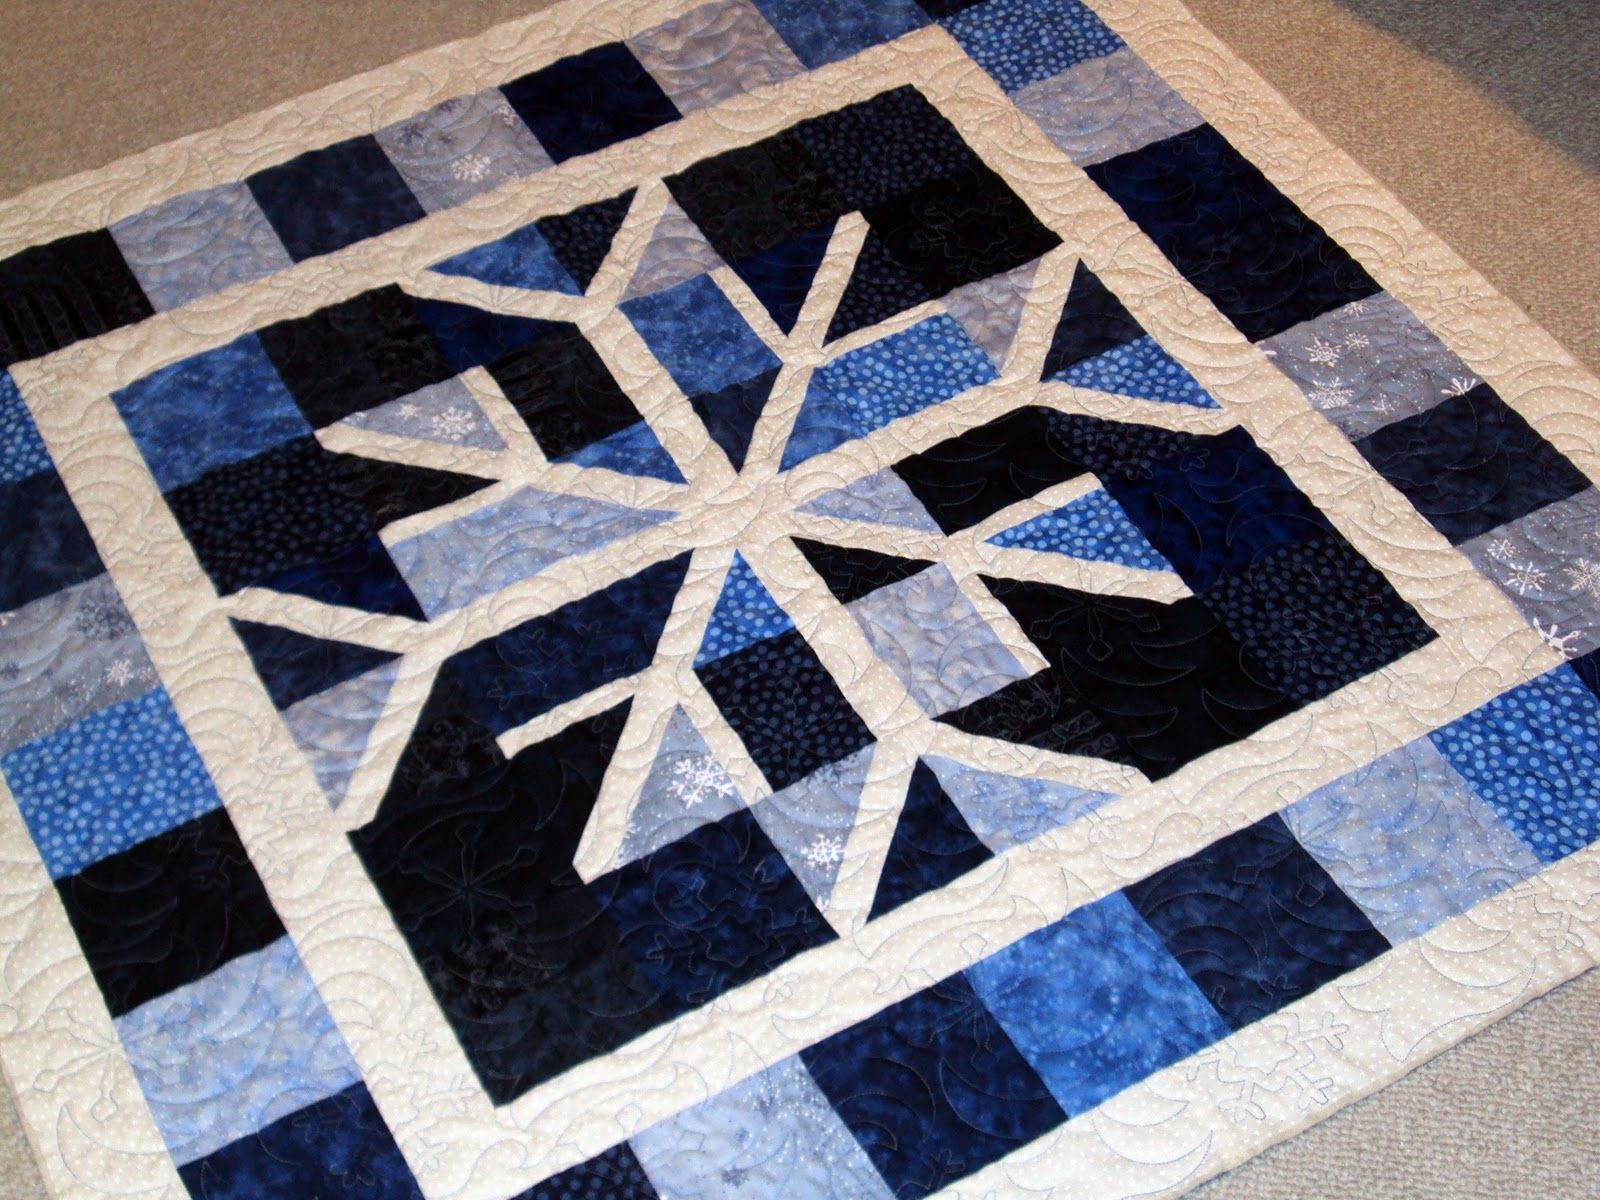 Gen X Quilters - Quilt Inspiration | Quilting Tutorials & Patterns | Connect: Snowflake Quilt: Brrr! Baby It's Cold Outside